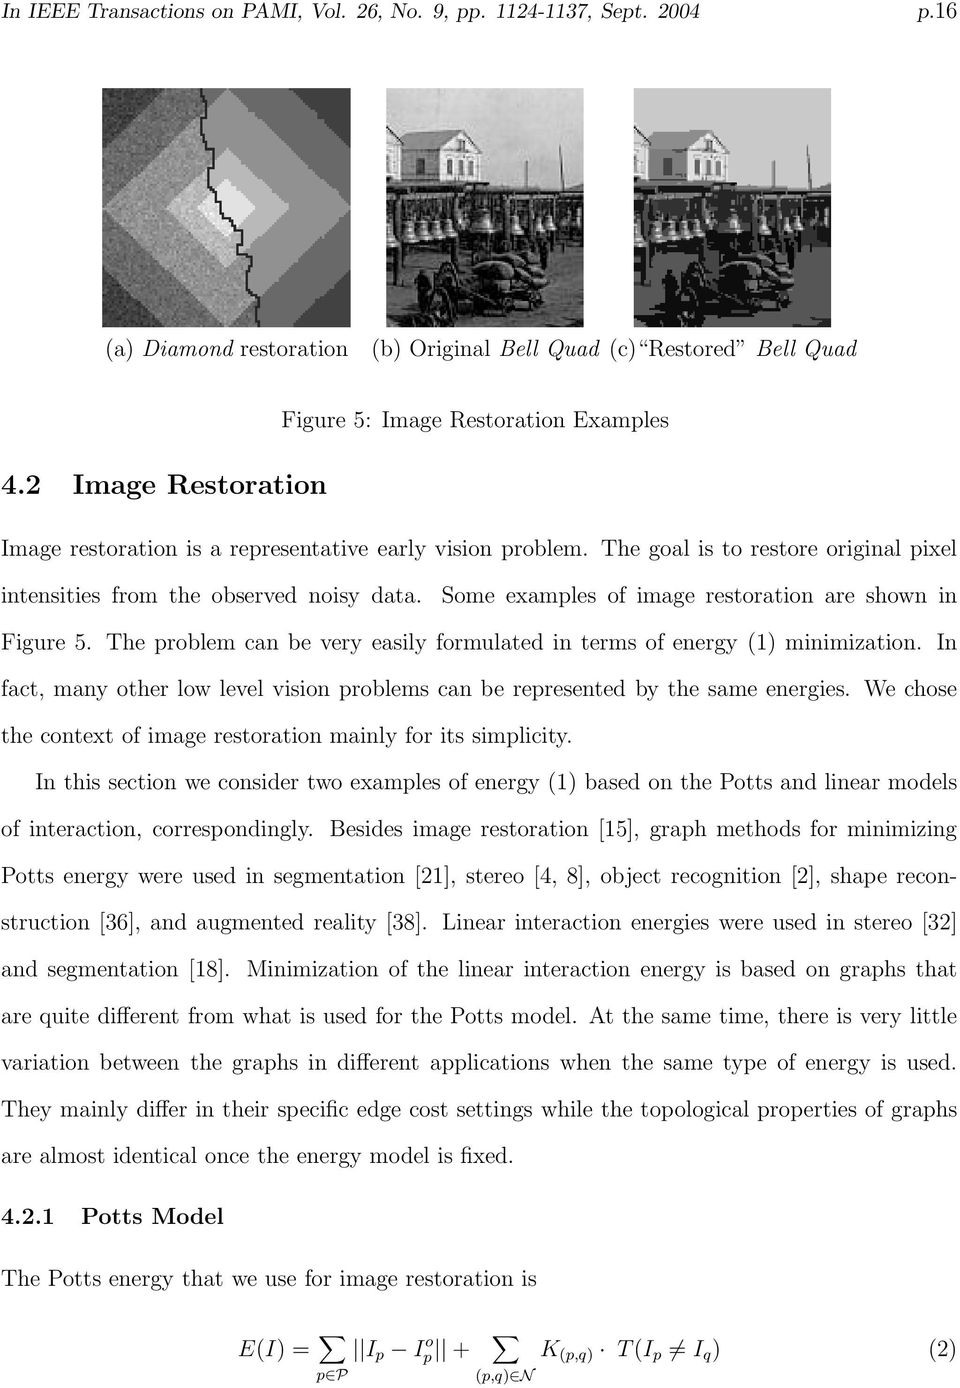 Some examples of image restoration are shown in Figure 5. The problem can be very easily formulated in terms of energy (1) minimization.